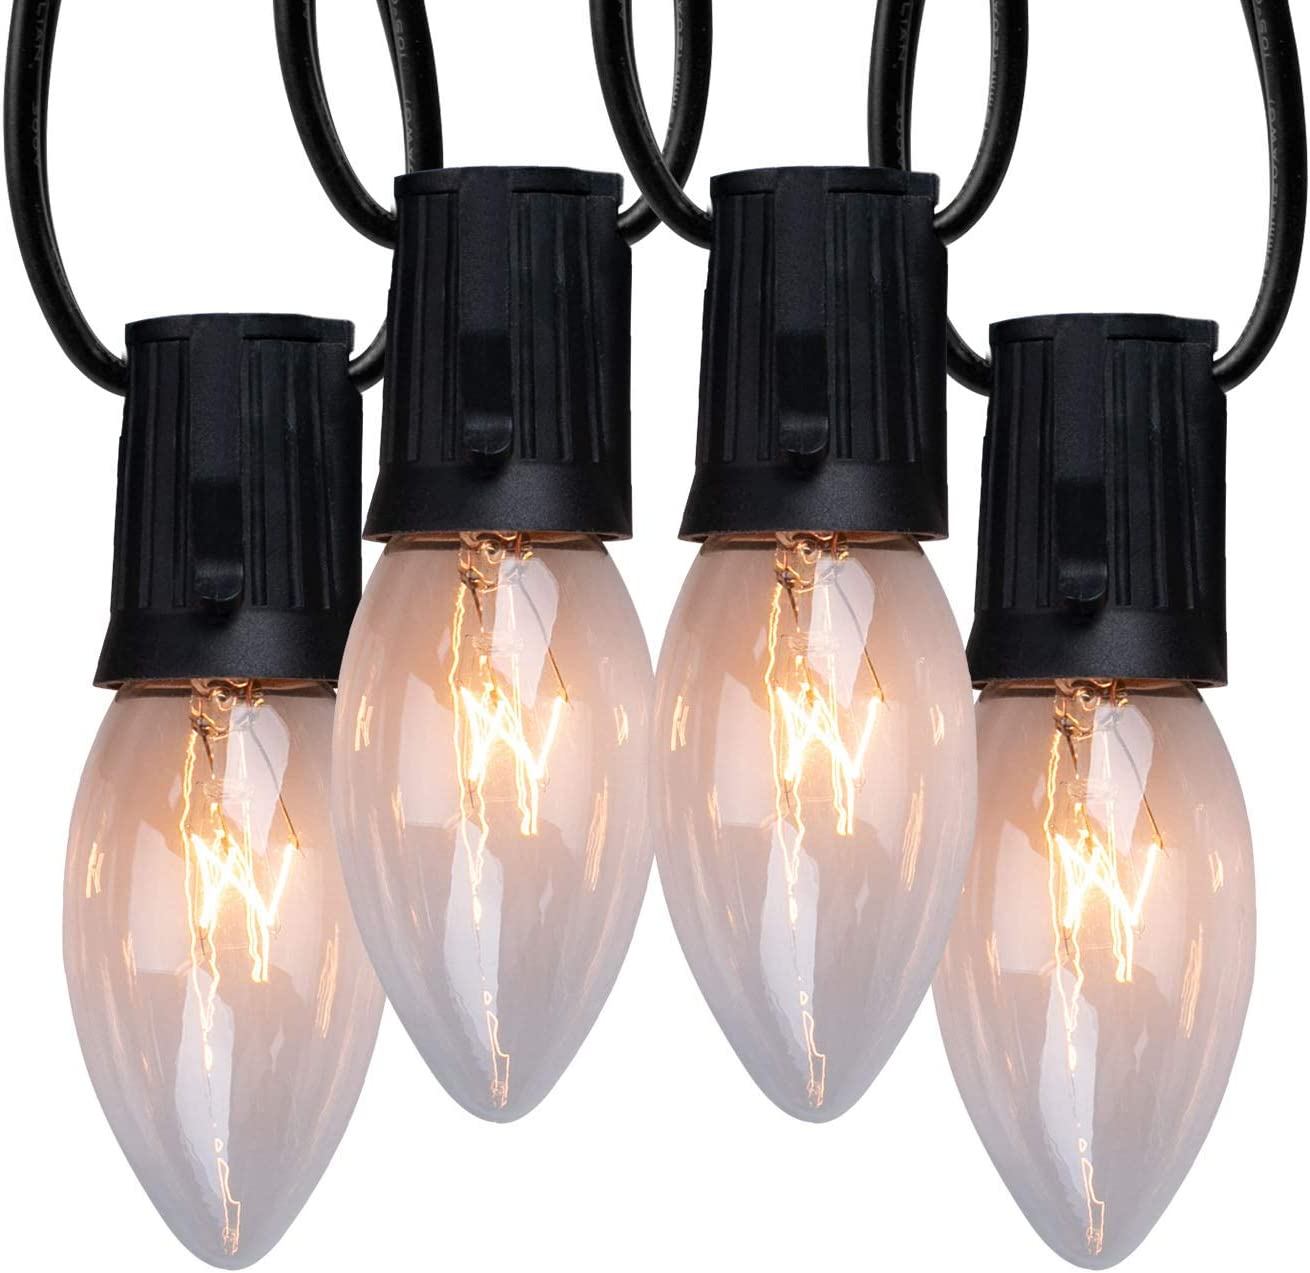 C9 Clear Christmas String Light Set, 50ft Vintage Christmas Tree Lights, Outdoor Roofline String Lights with 50 Clear Bulbs for Patio Garden Holiday Indoor Wedding Home Decorating, Black Wire